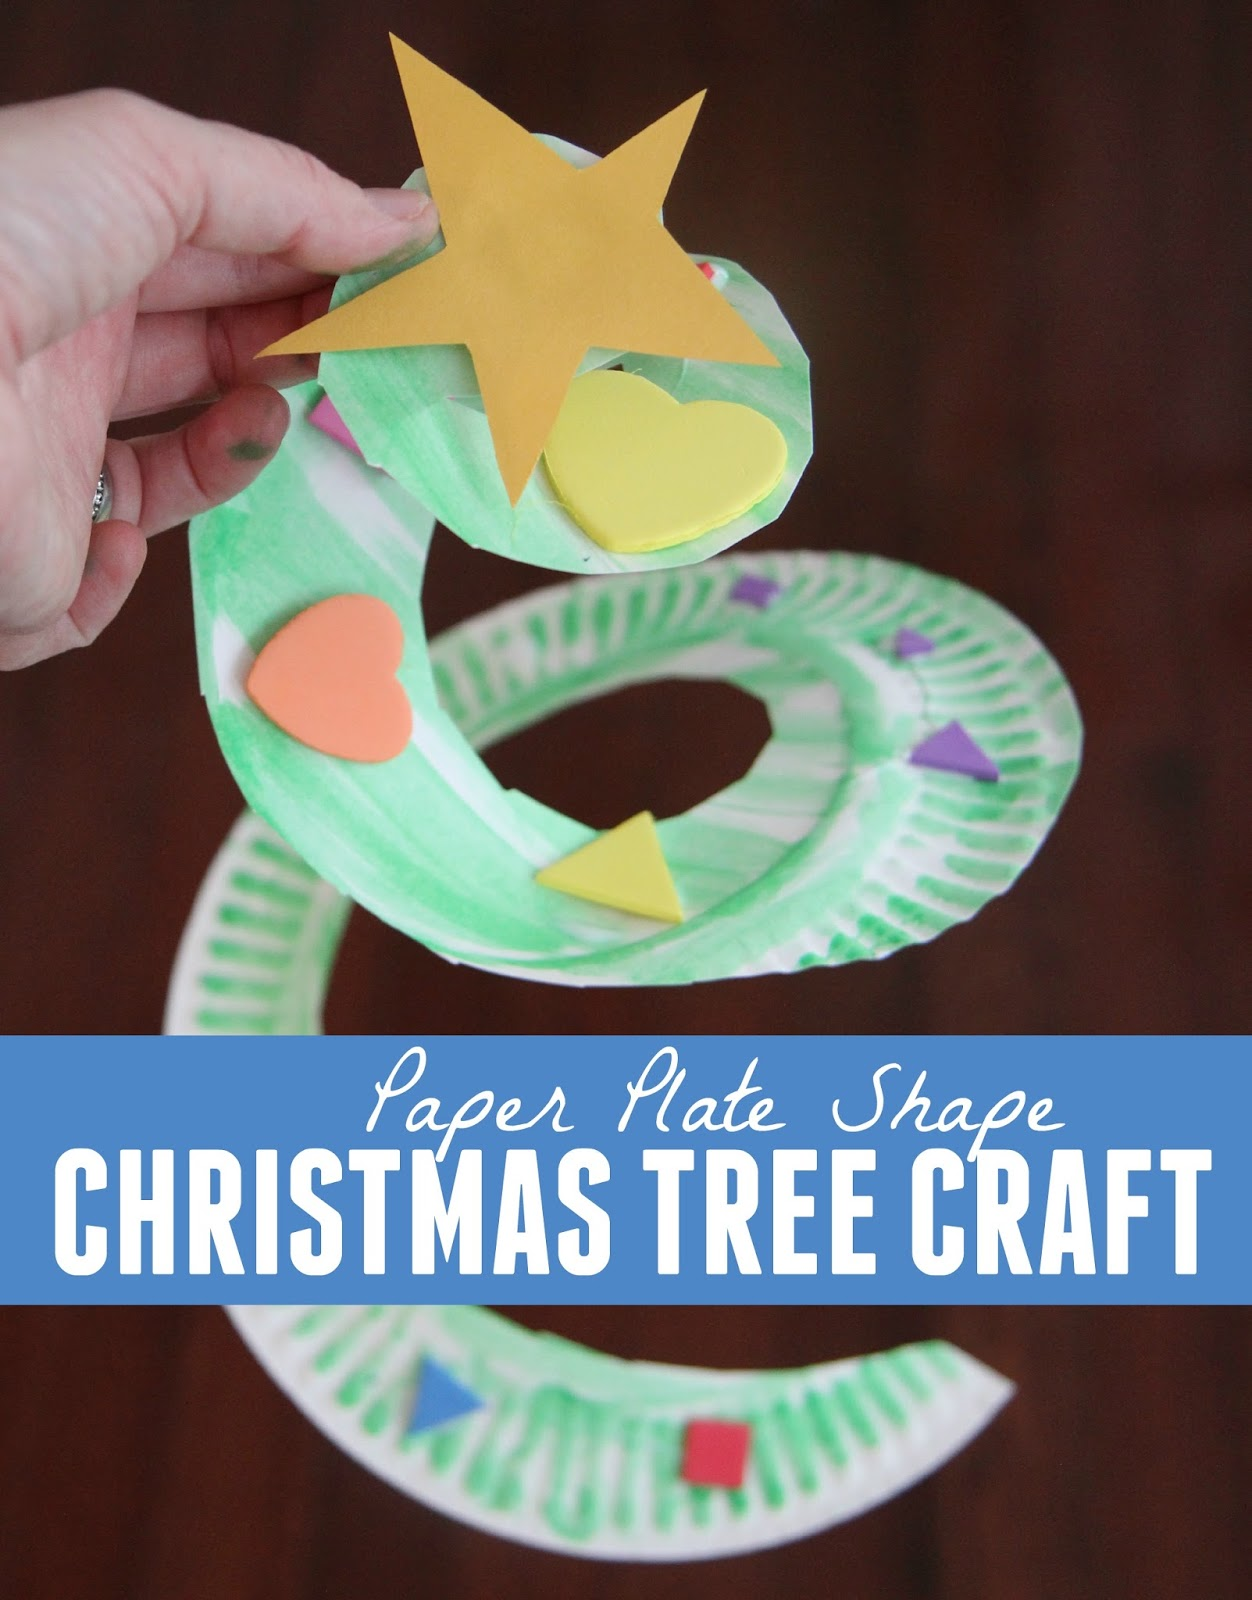 Toddler Approved!: Paper Plate Shape Christmas Tree Craft